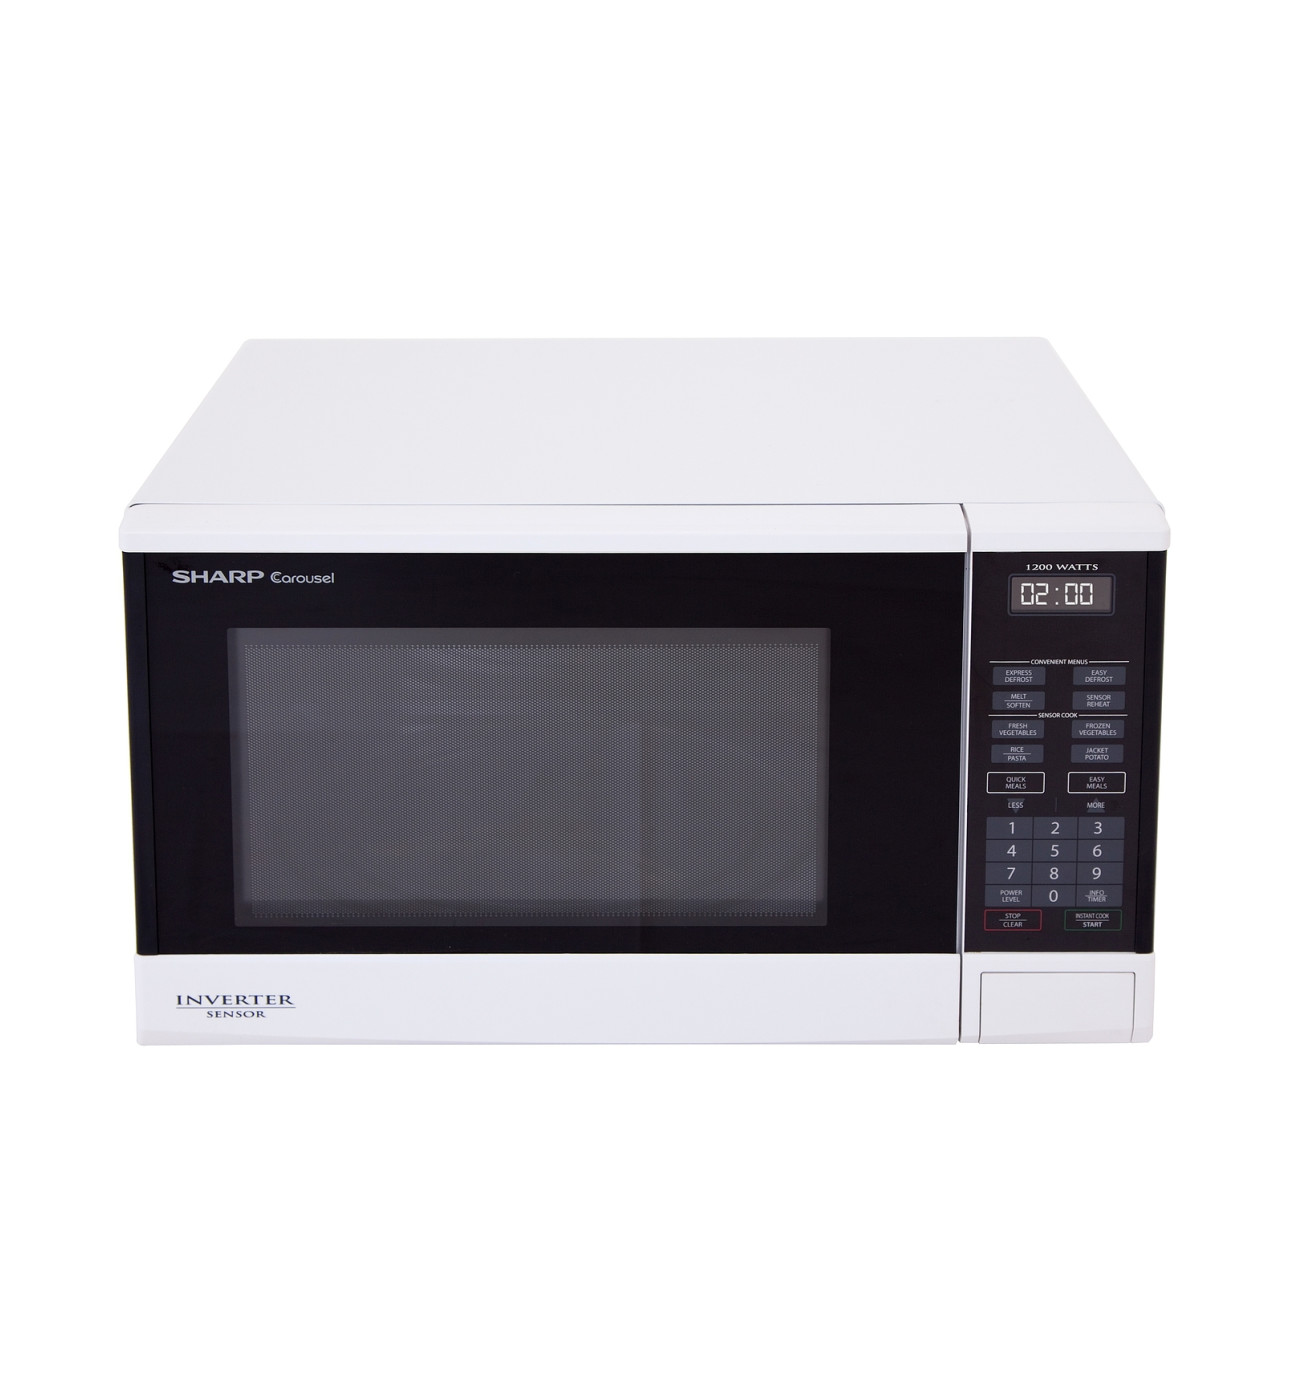 Sharp R350yw Microwave Oven